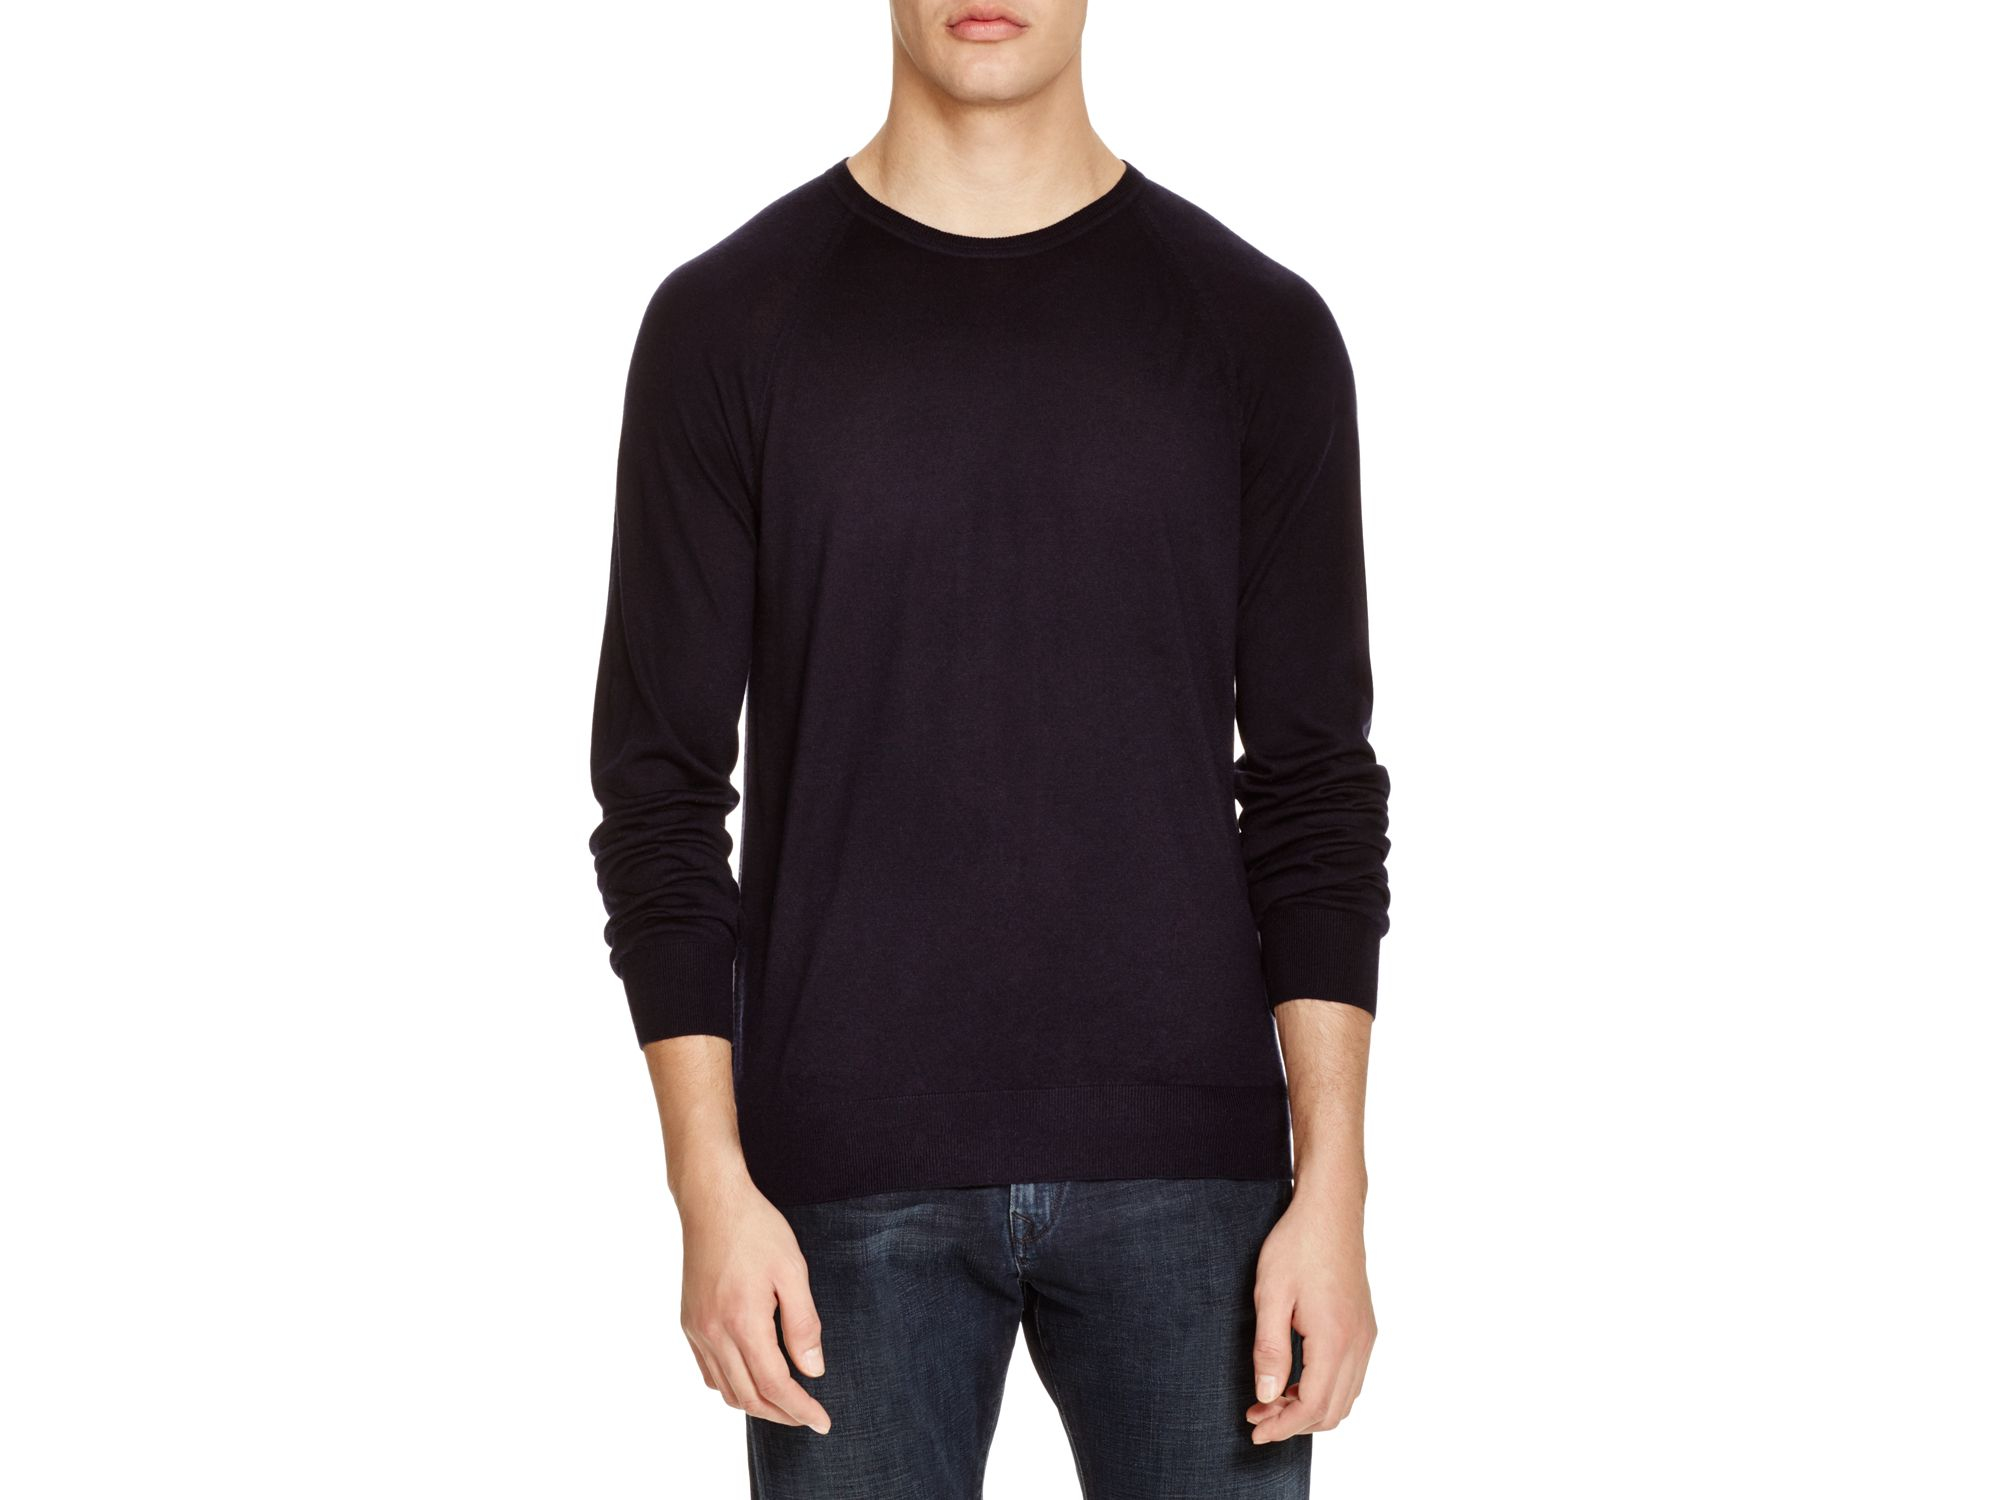 Men's Sale Back; Cotton Shirts Polos & Tees Pants & Shorts Hats & Caps Men Men's Clothing Sweaters & Cardigans. Men's Sweaters & Cardigans. Men Men's Clothing Sweaters & Cardigans. Sort By. Go. Filter. Showing 1 - 20 of 20 Results TWO GREY HILLS ZIP CARDIGAN.